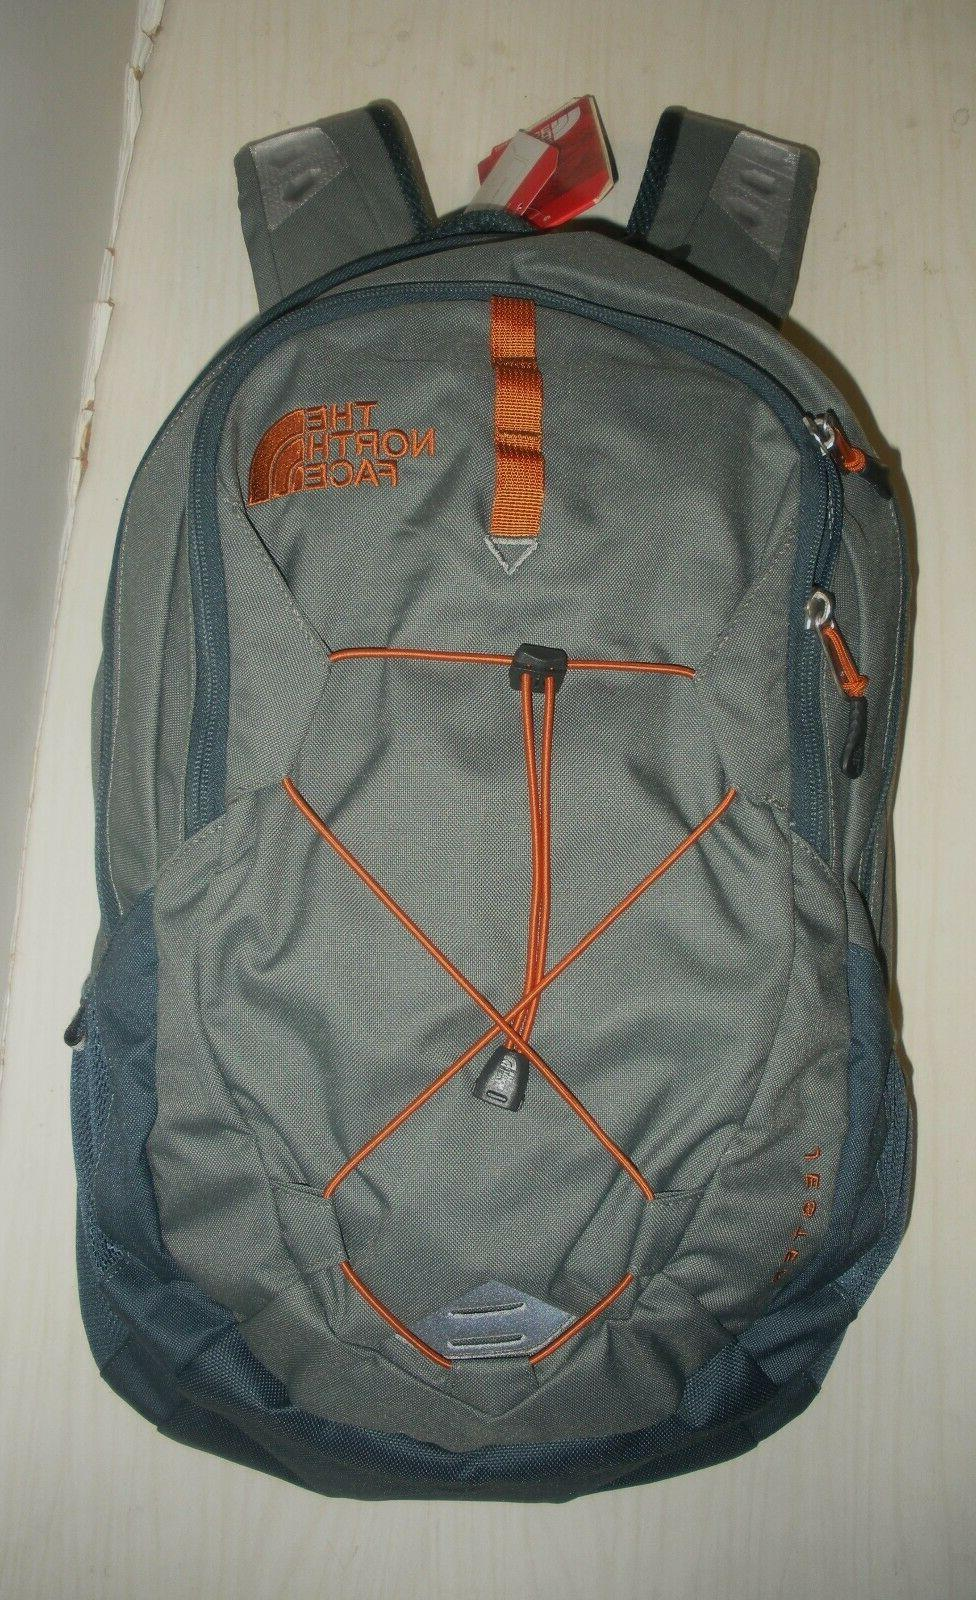 902e5b38a The North Face Jester Backpack - Sedona Sage